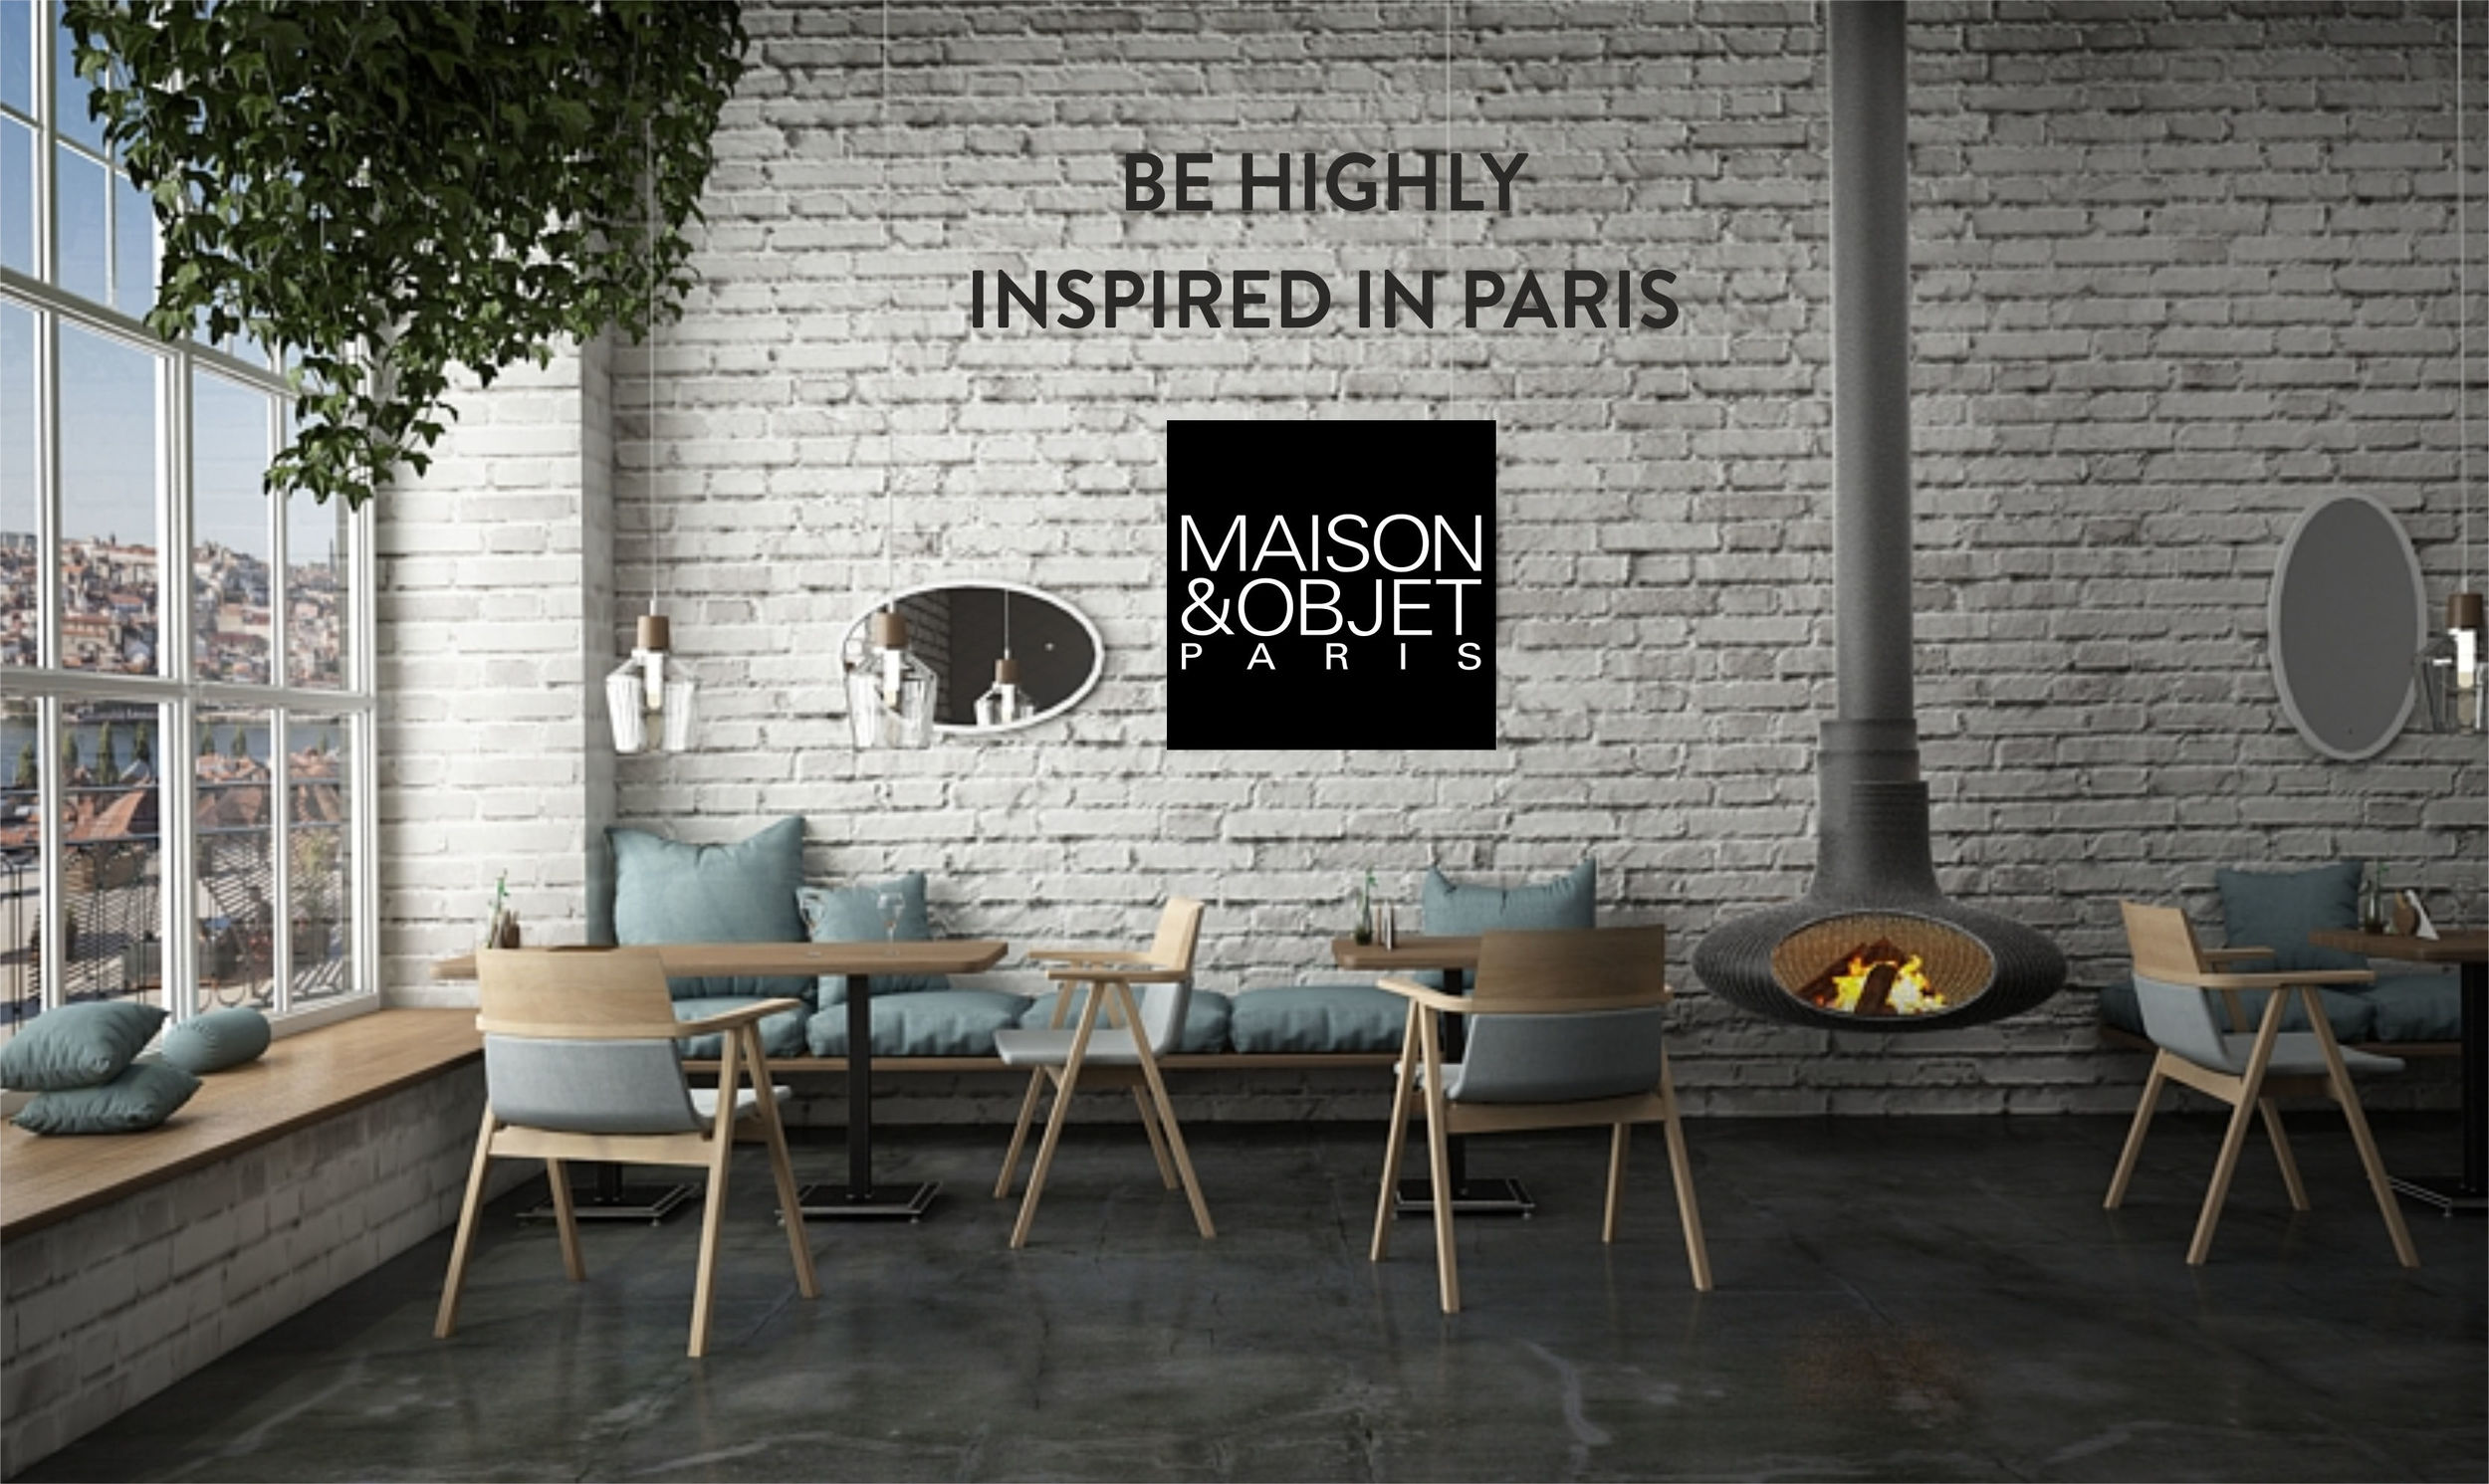 We are getting closer to first event of the year -  Maison & Objet Paris 2016  and as always  WEWOOD  has prepared an unique presentation with some exciting news.  From  22 to 26 of January  we'll be at  HALL 7 - NOW! DESIGN À VIVRE , as the last time, and we have fresh news to show you!  In the last few months we've worked hard in some new products and we couldn't be more excited to introduce it to you. Alongside the new products, also on display will be our most iconic pieces such as:  SCAFFOLD ,  METIS ,  X2  and  MISTER .